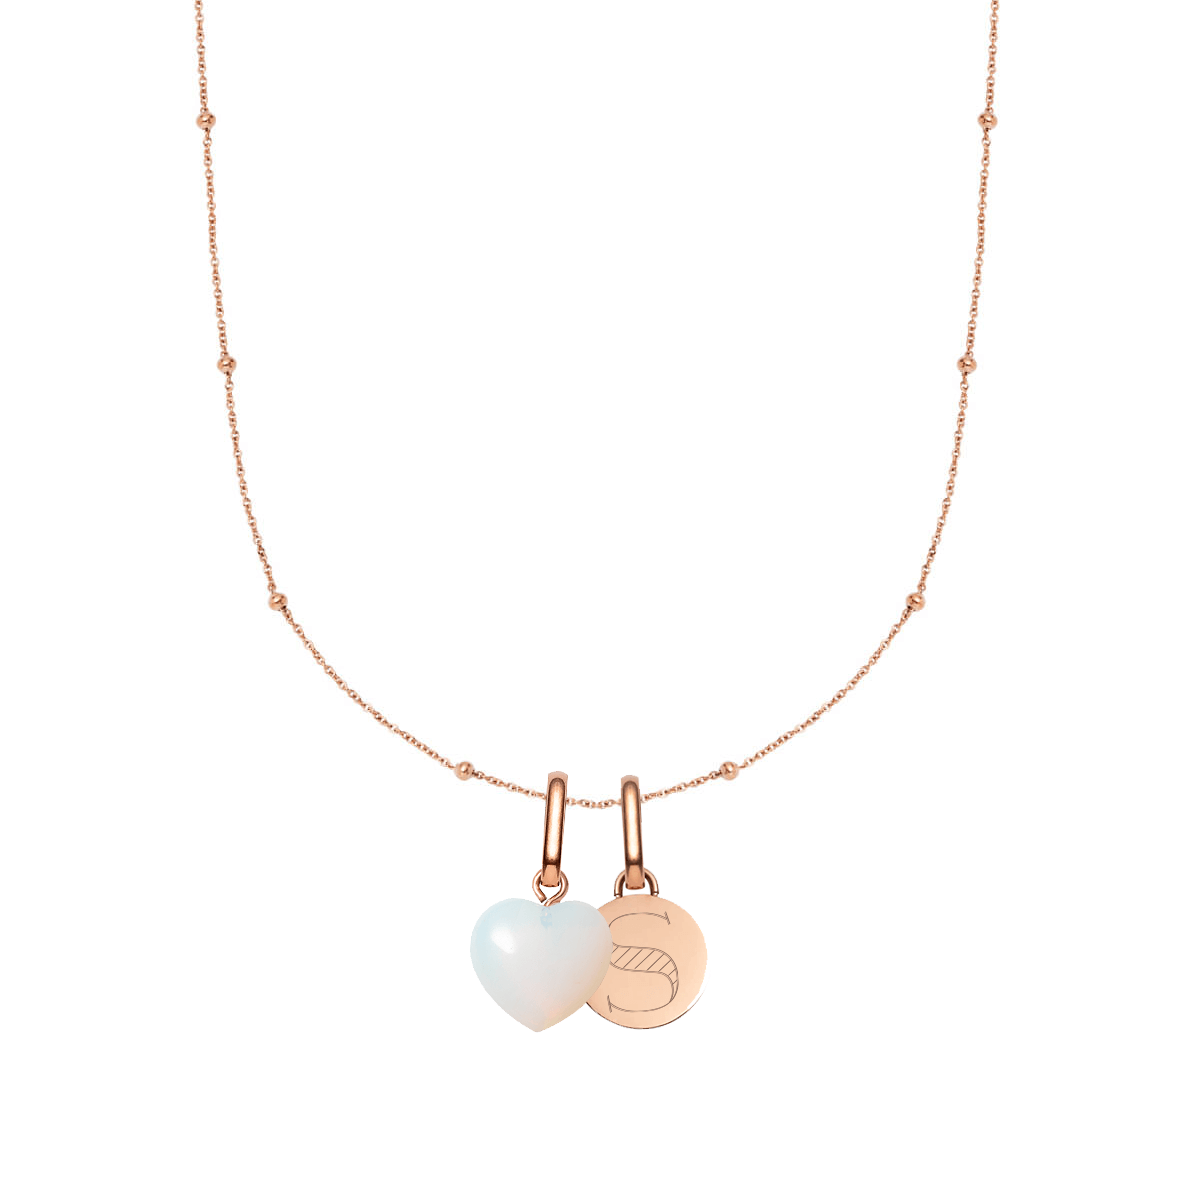 Birthstone & Circular Pendant Sphere Chain Necklace (Rose Gold)